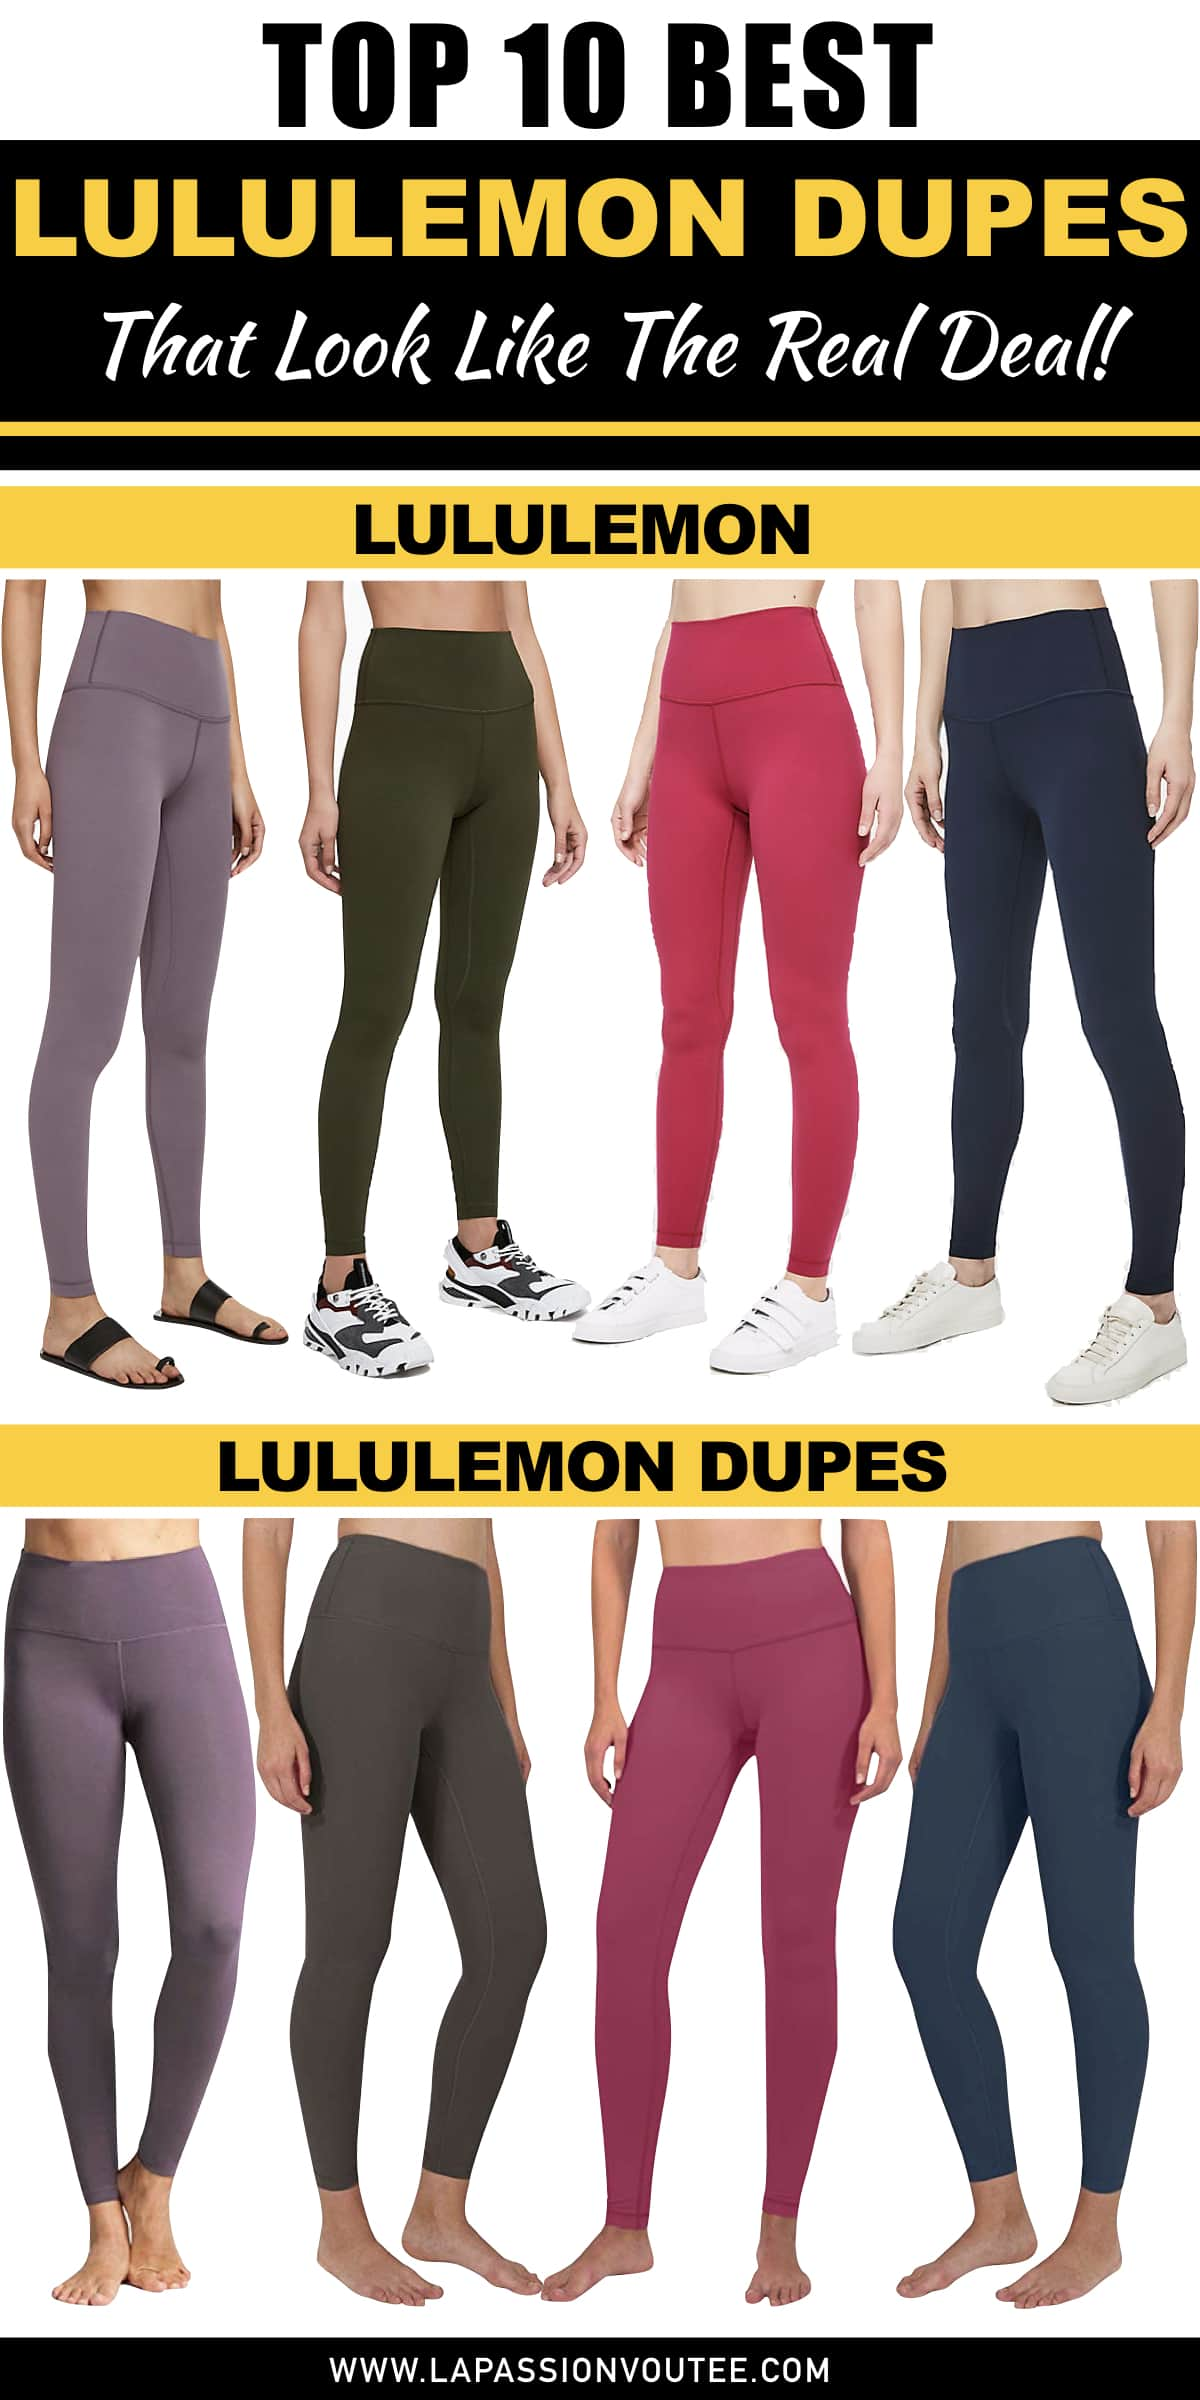 ff2a1daec4 After much research (and shopping), these are the best of the best Lululemon